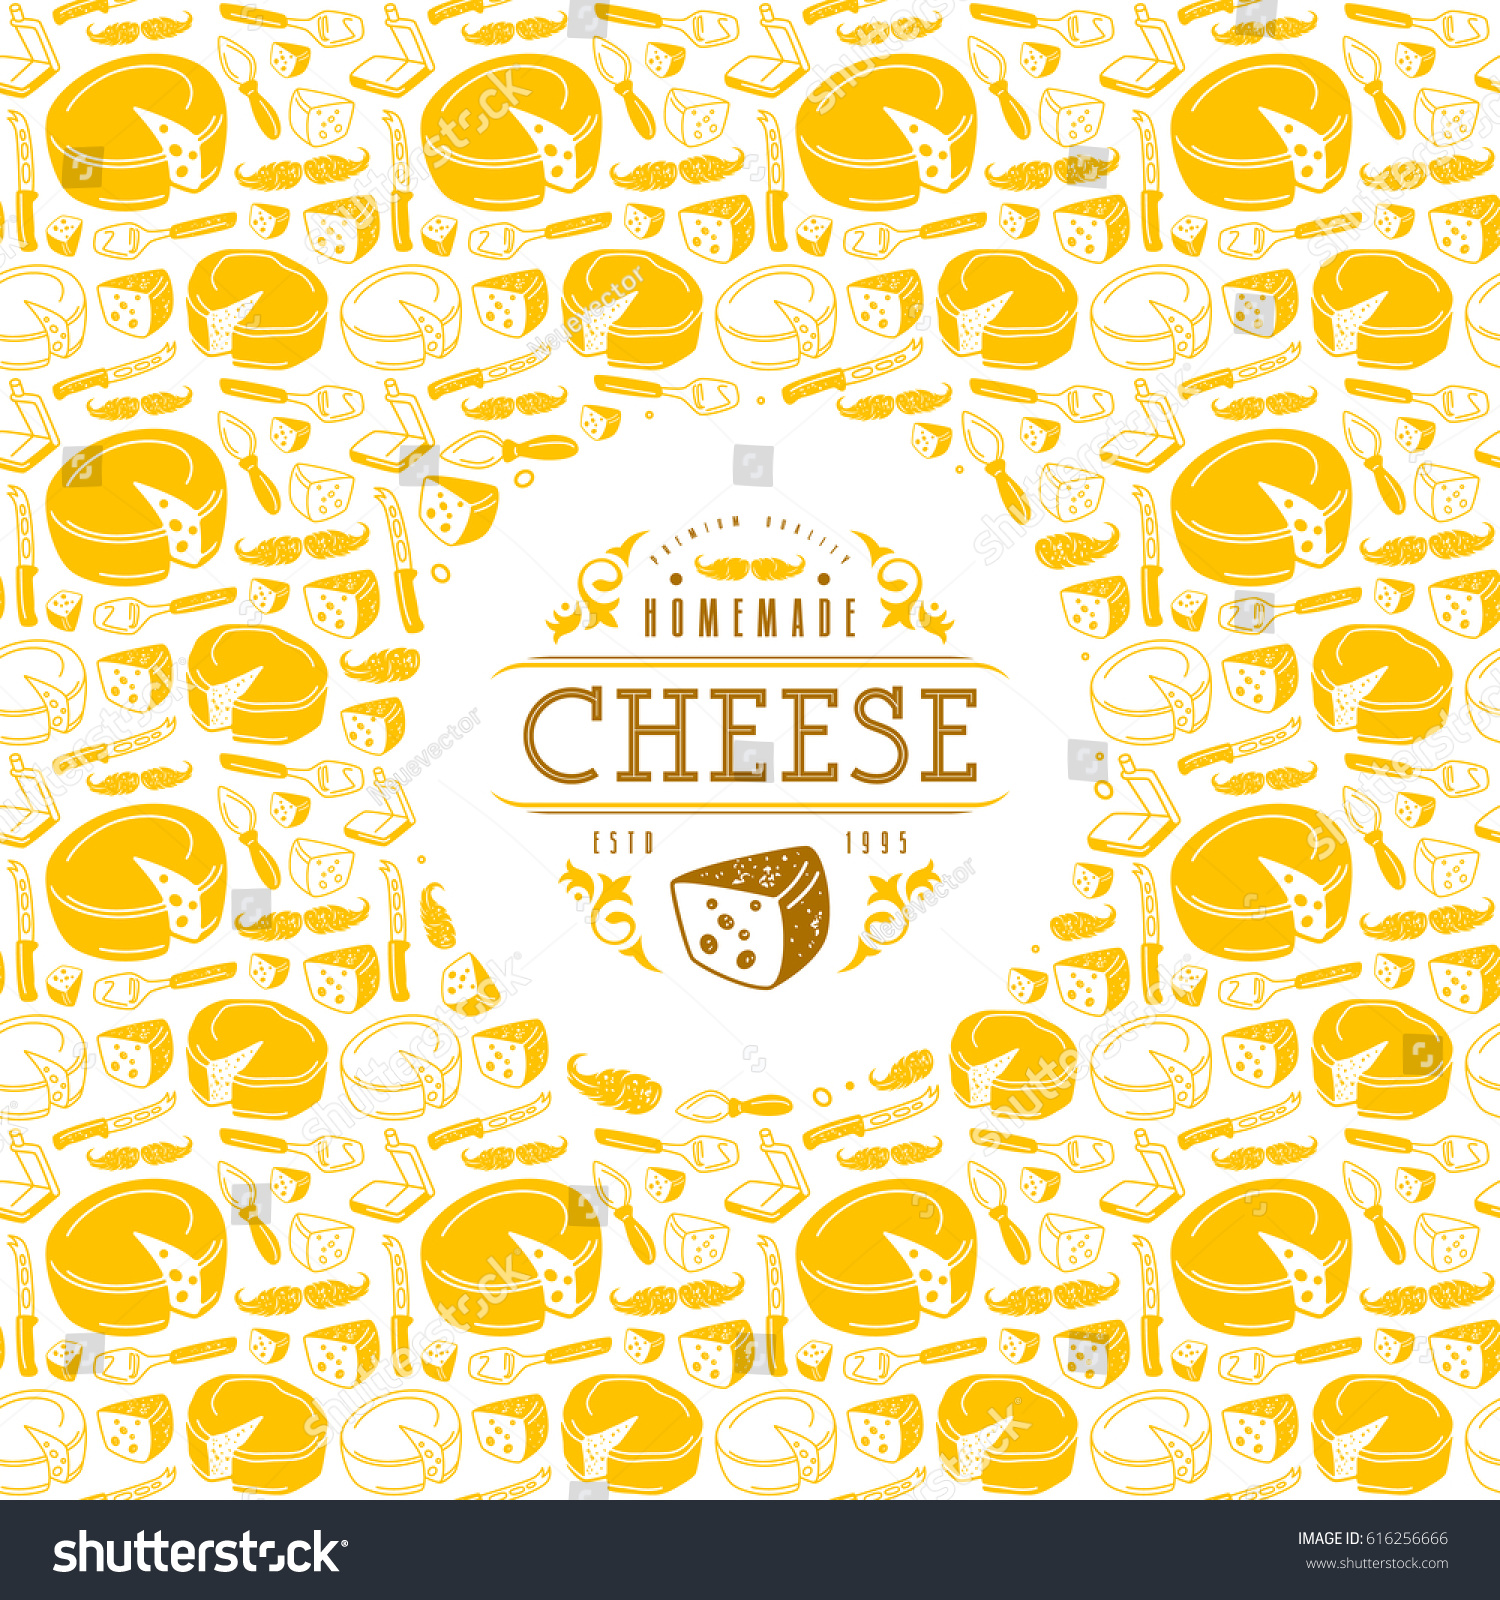 a538ae502a8 Cheese label and frame with pattern. Design in retro style. Color print on  white